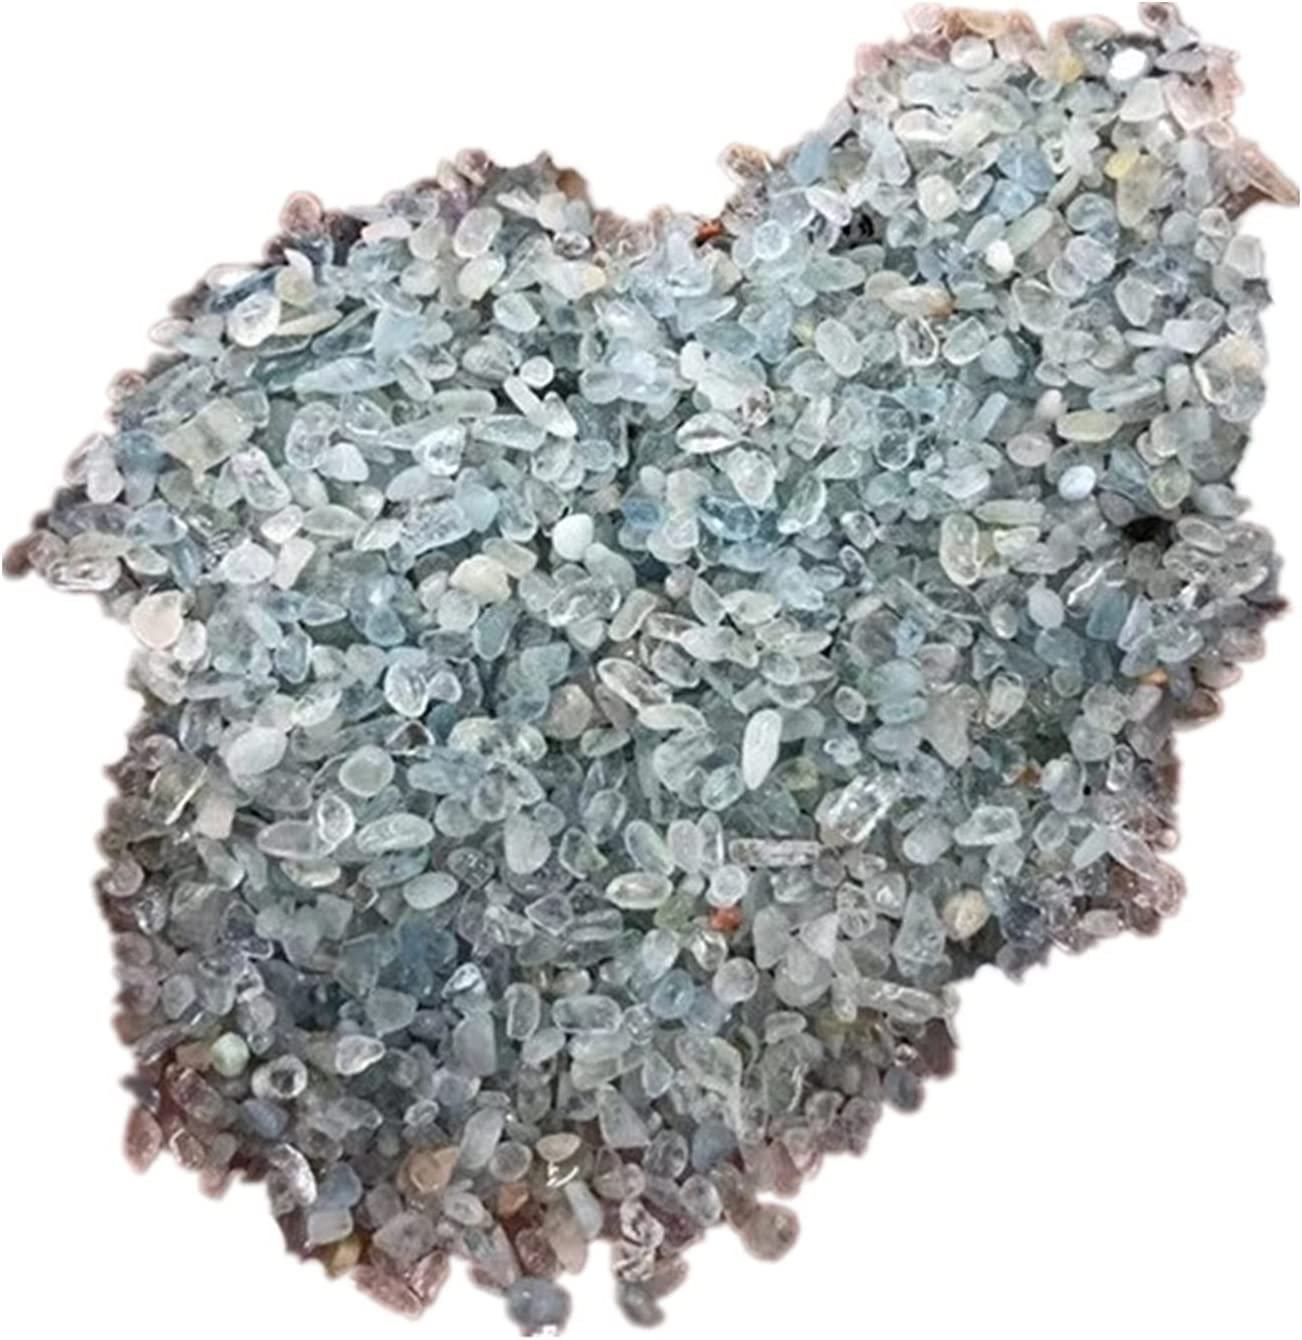 WZCUICAN Aquamarine Crystal Chips Raleigh Mall Polished Natural Financial sales sale Gra Wholesale